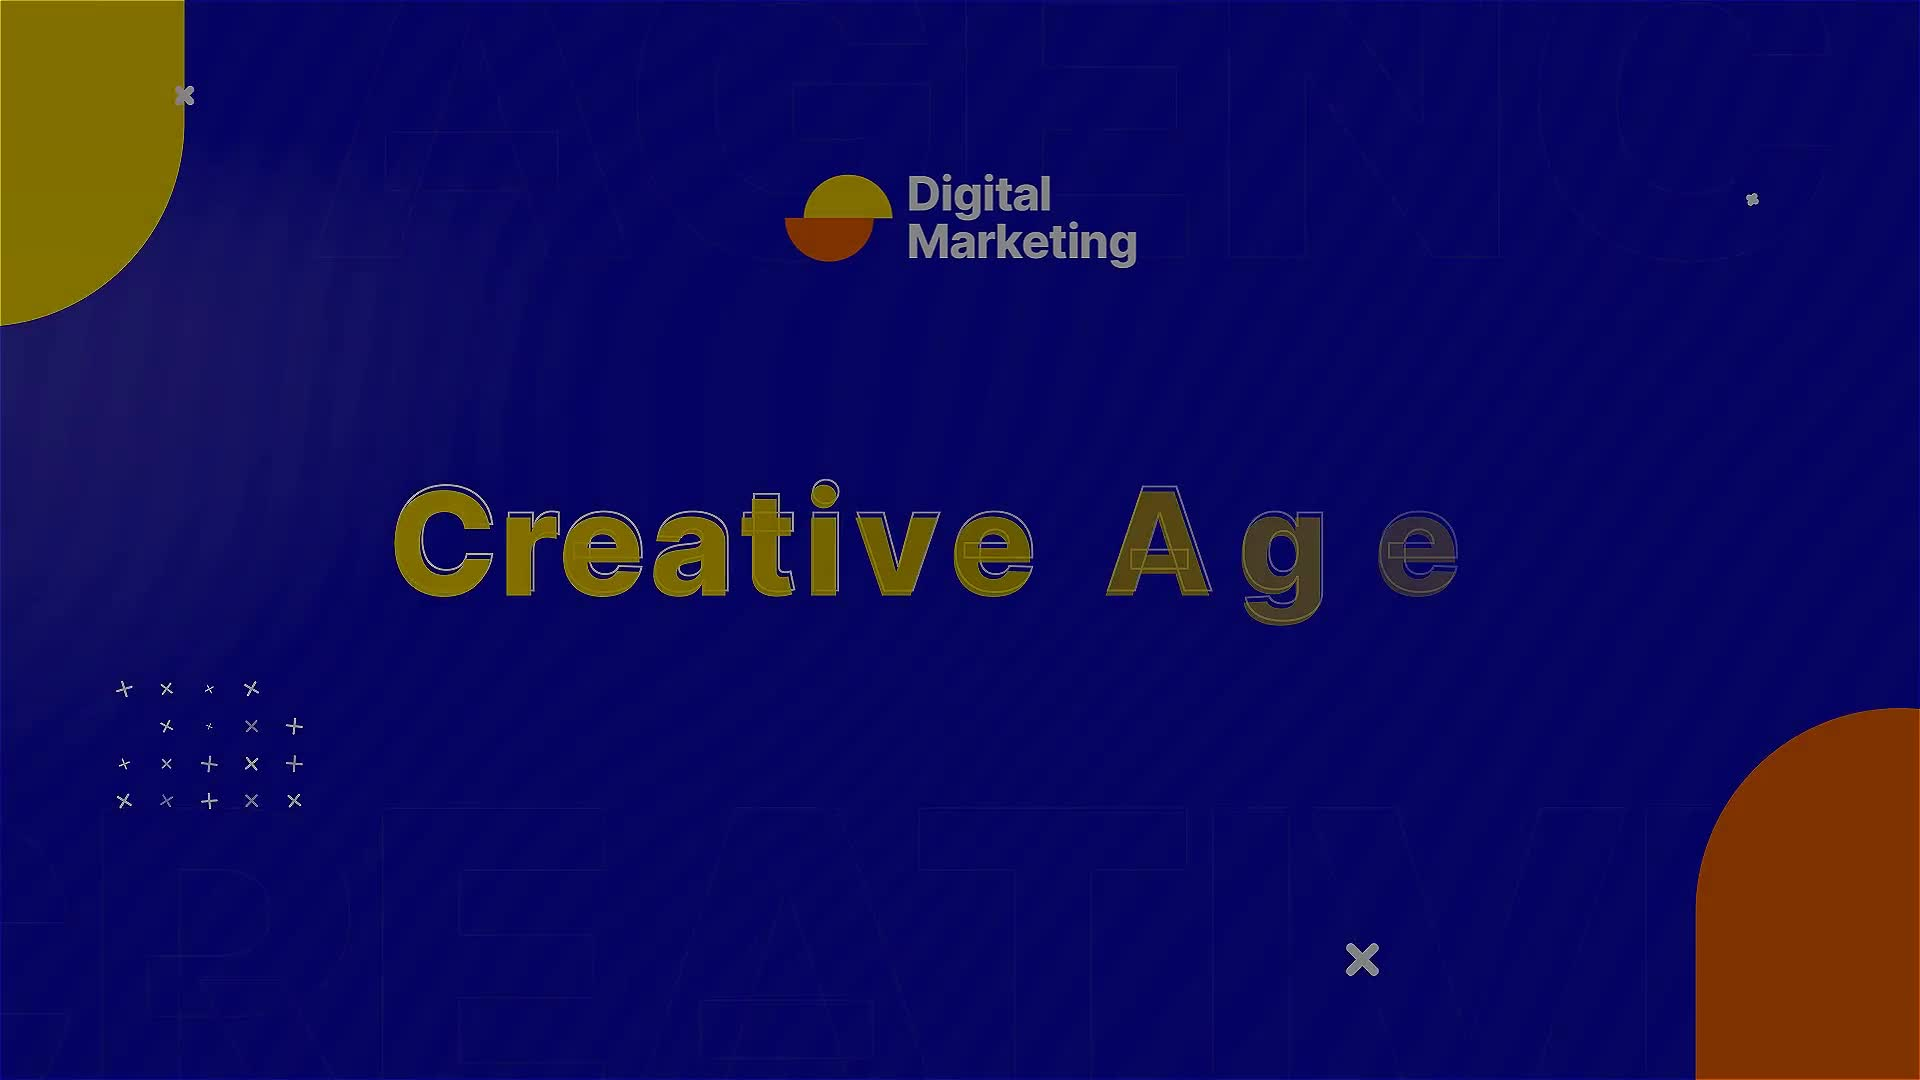 Digital Marketing Agency Promo Videohive 31523069 After Effects Image 1